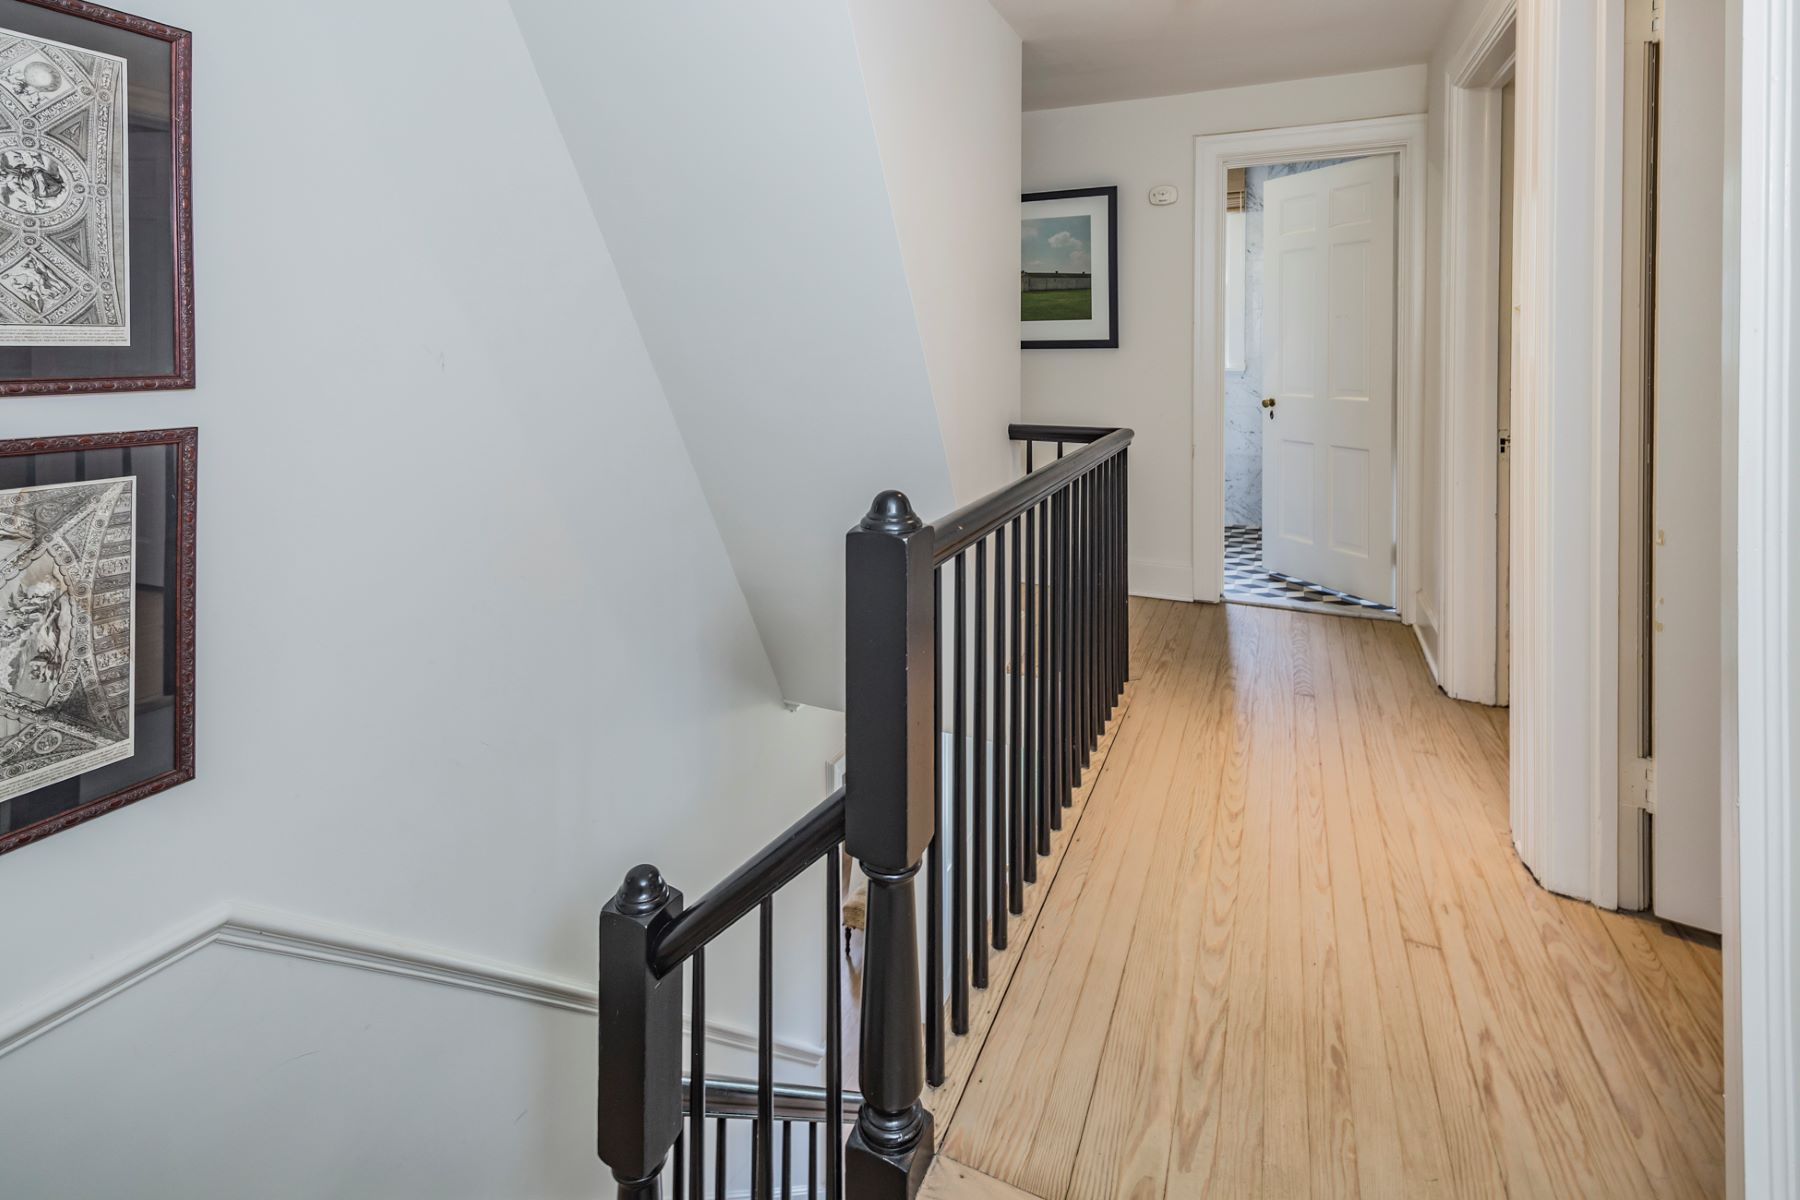 Additional photo for property listing at Easy On The Eyes 57 Elm Road, Princeton, New Jersey 08540 United States